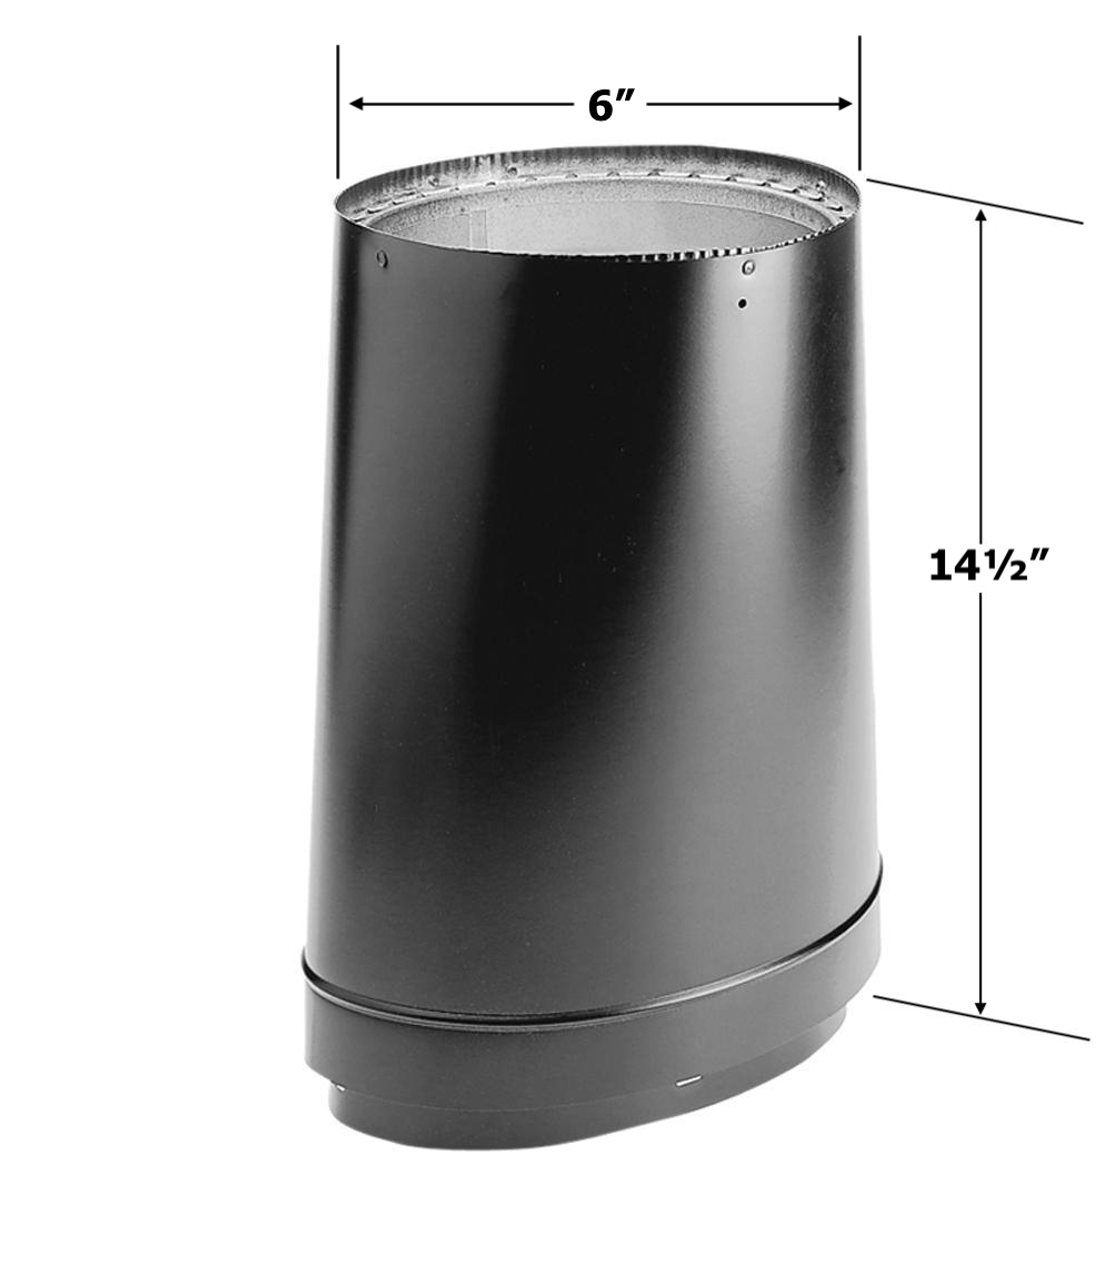 DuraVent Oval to Round Stove Adapter 6DVL-ORAD for Vermont Castings